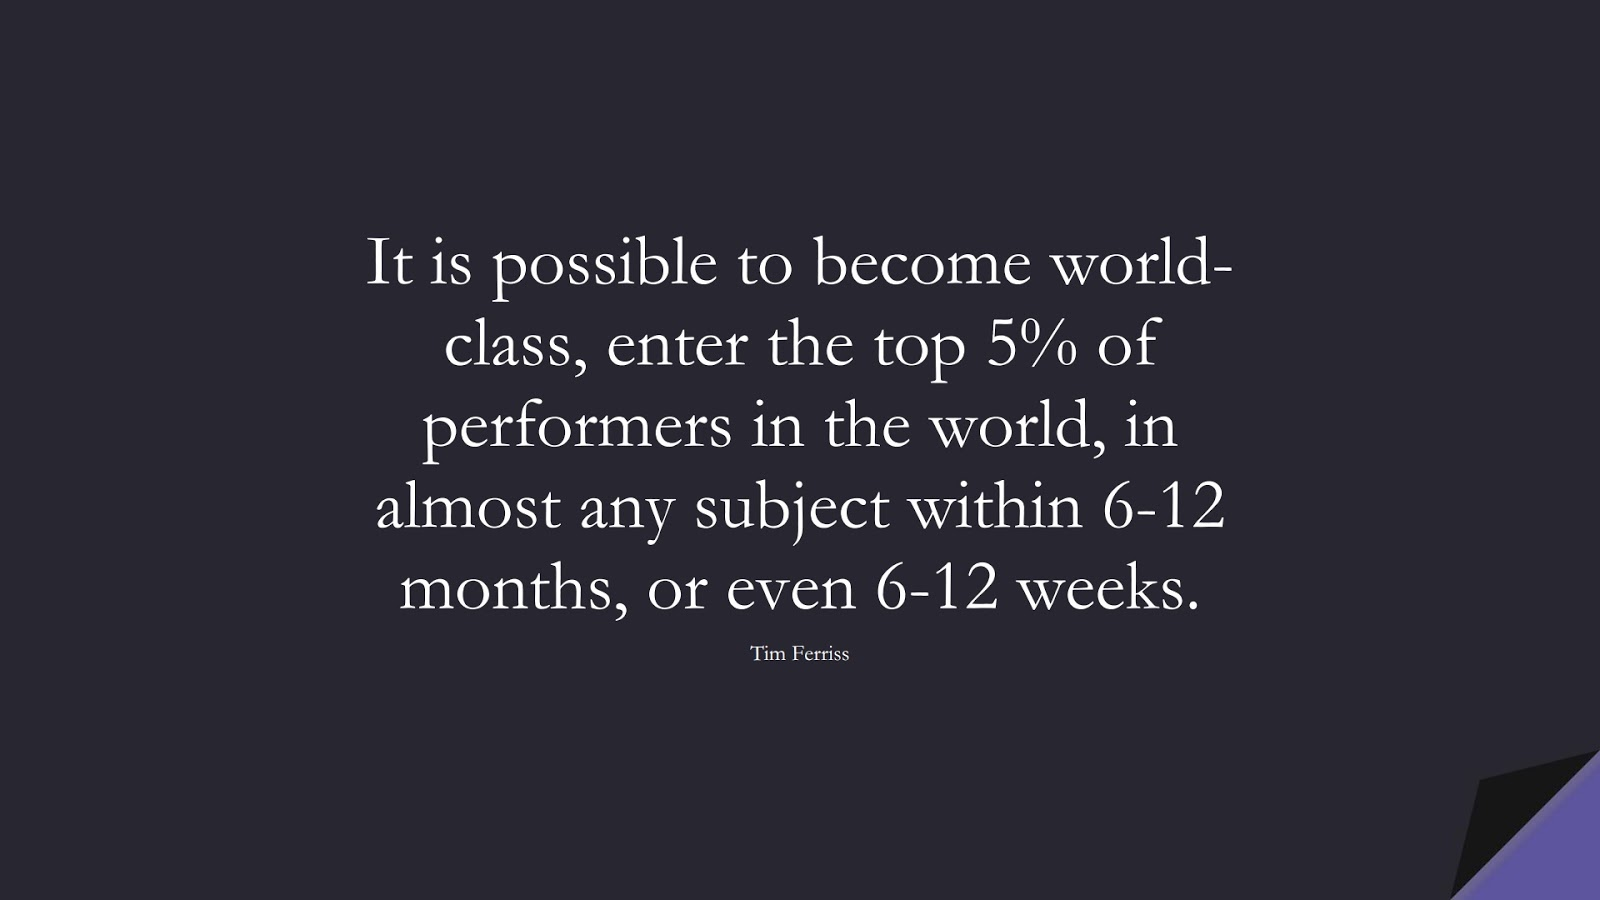 It is possible to become world-class, enter the top 5% of performers in the world, in almost any subject within 6-12 months, or even 6-12 weeks. (Tim Ferriss);  #TimFerrissQuotes